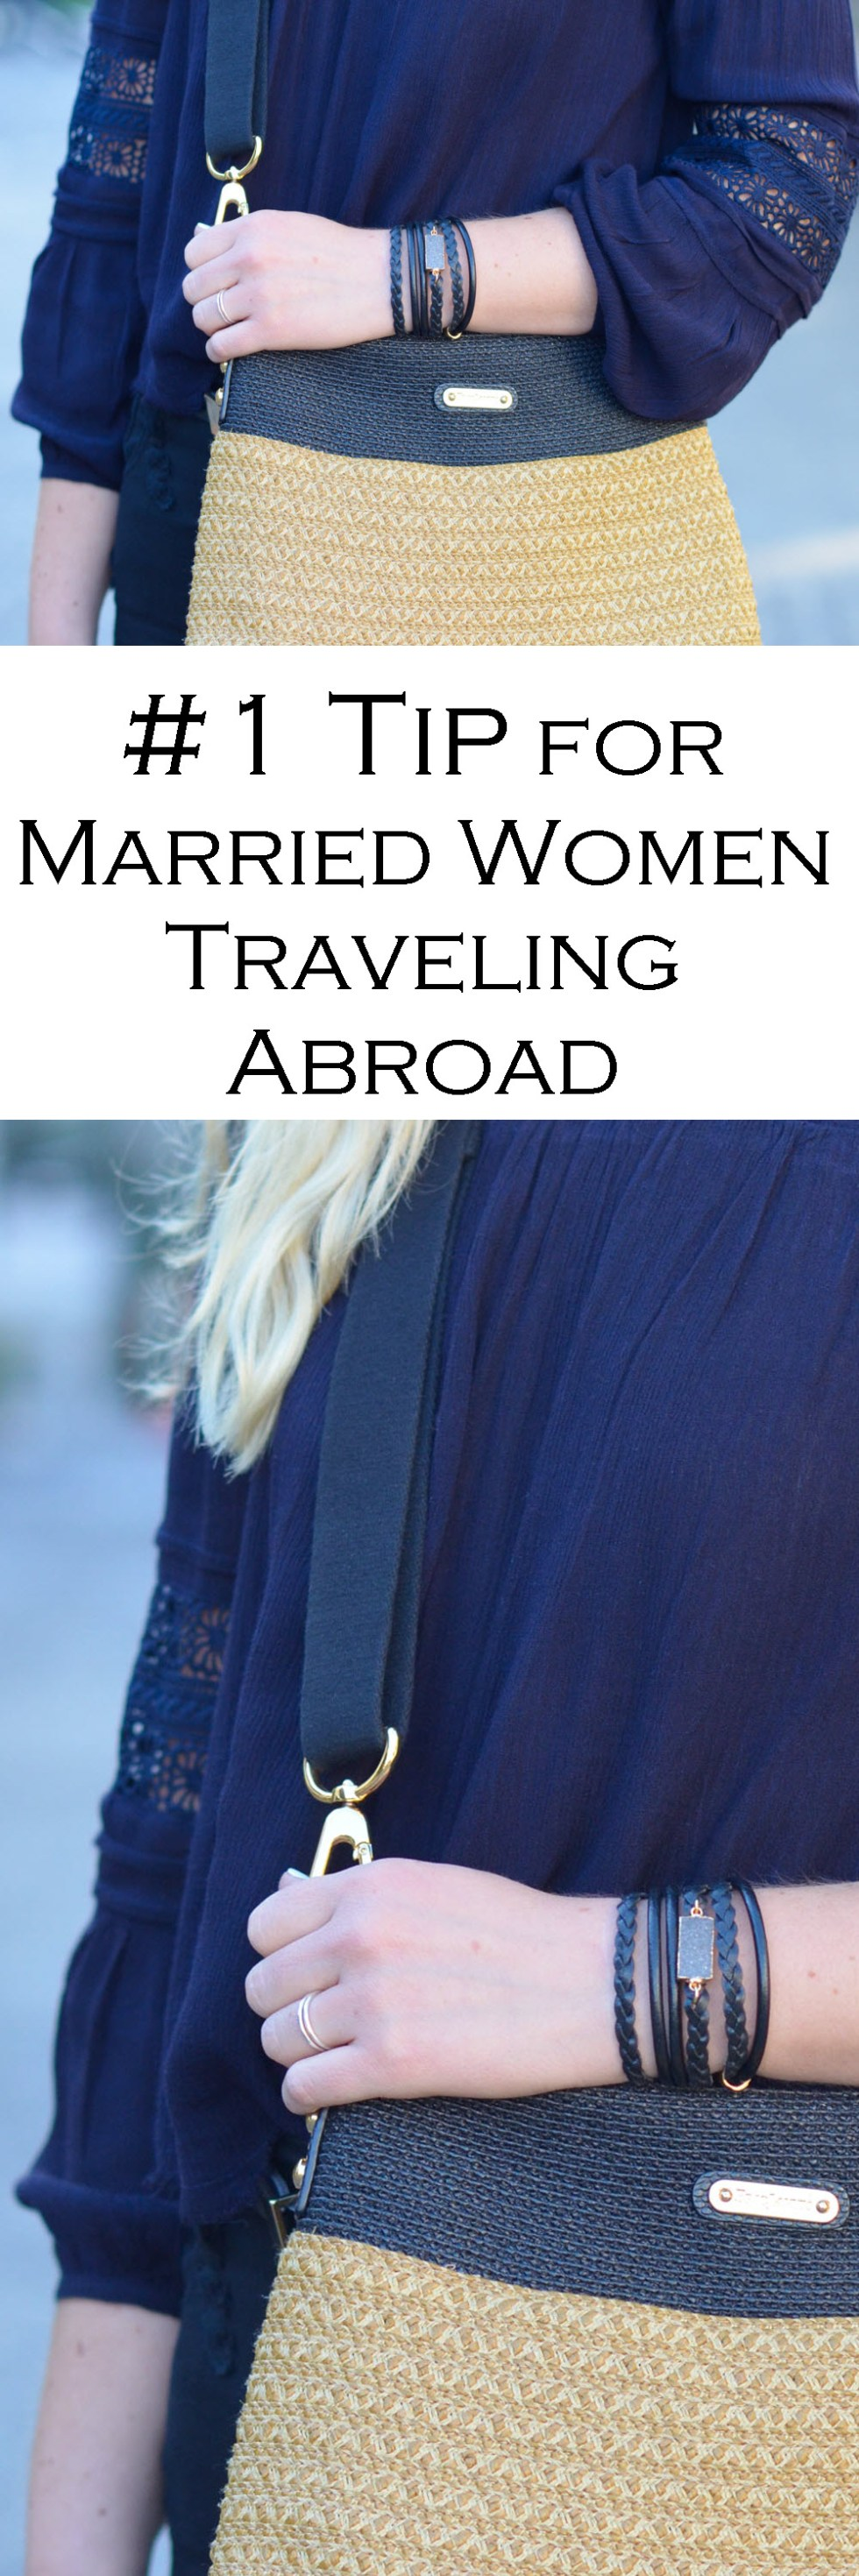 #1 Tip for Married Women Traveling Internationally - Wearing Engagement + Wedding Rings Abroad